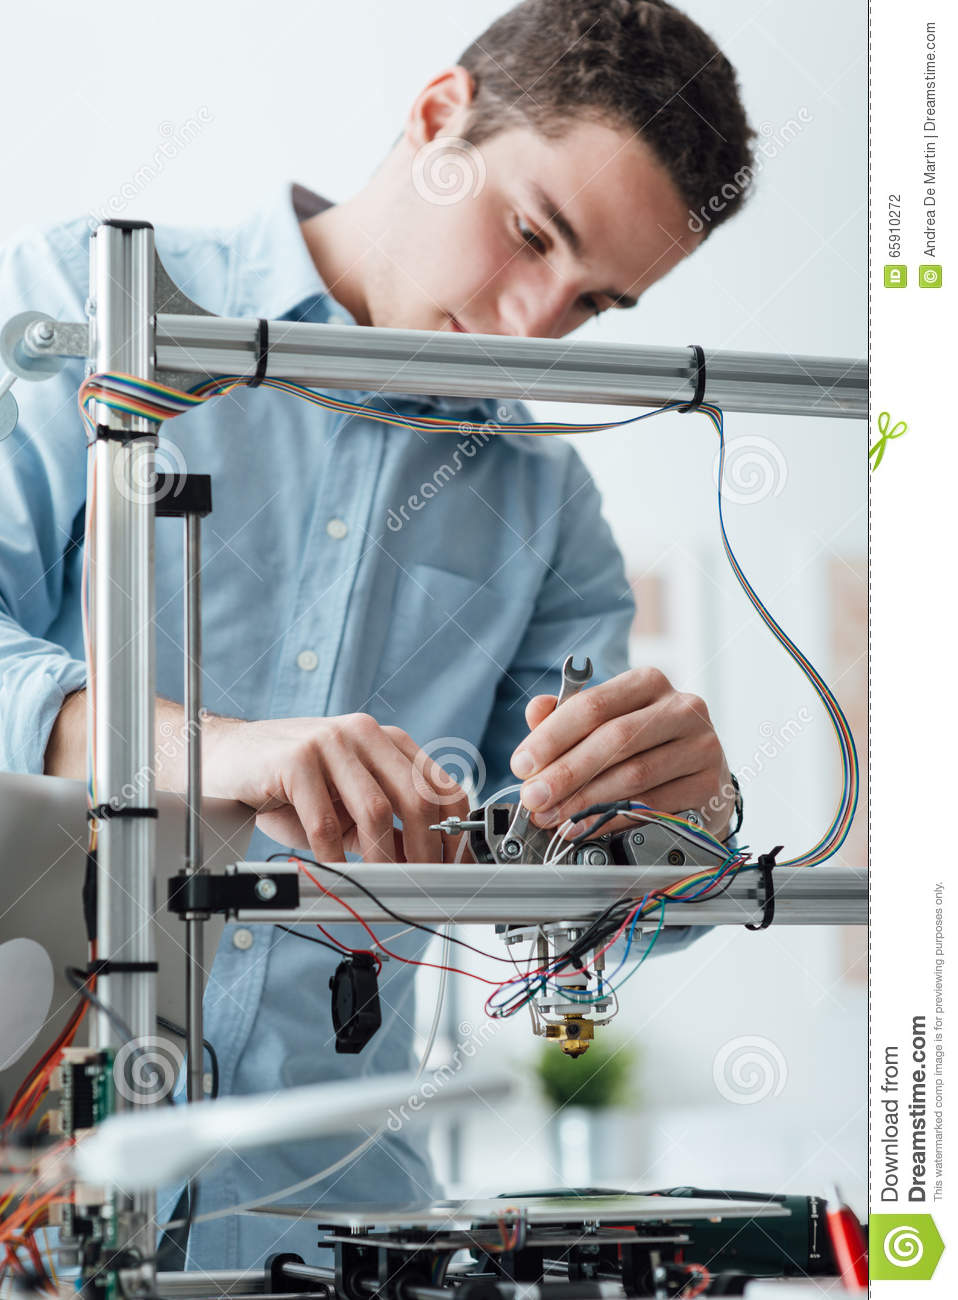 Engineer working on a 3D printer